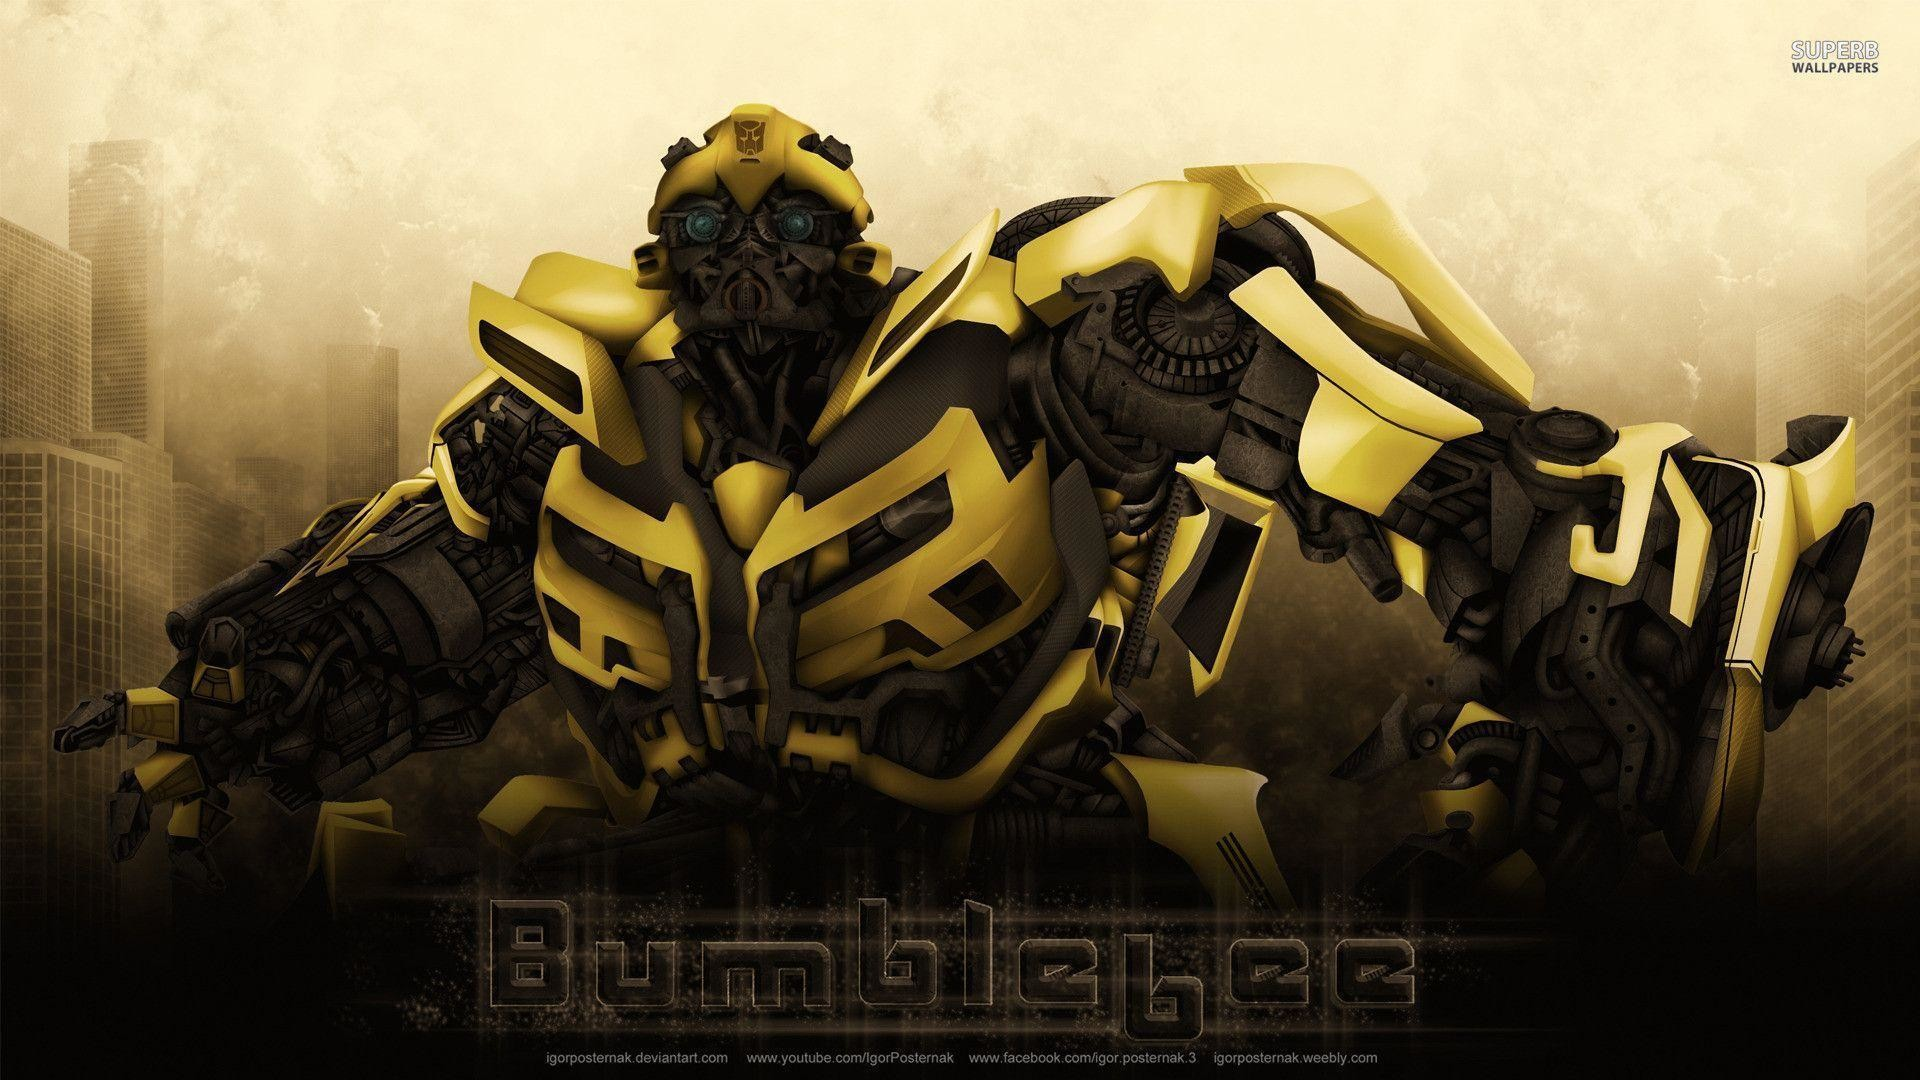 1920x1080 Bumblebee - Transformers wallpaper - Game wallpapers - #